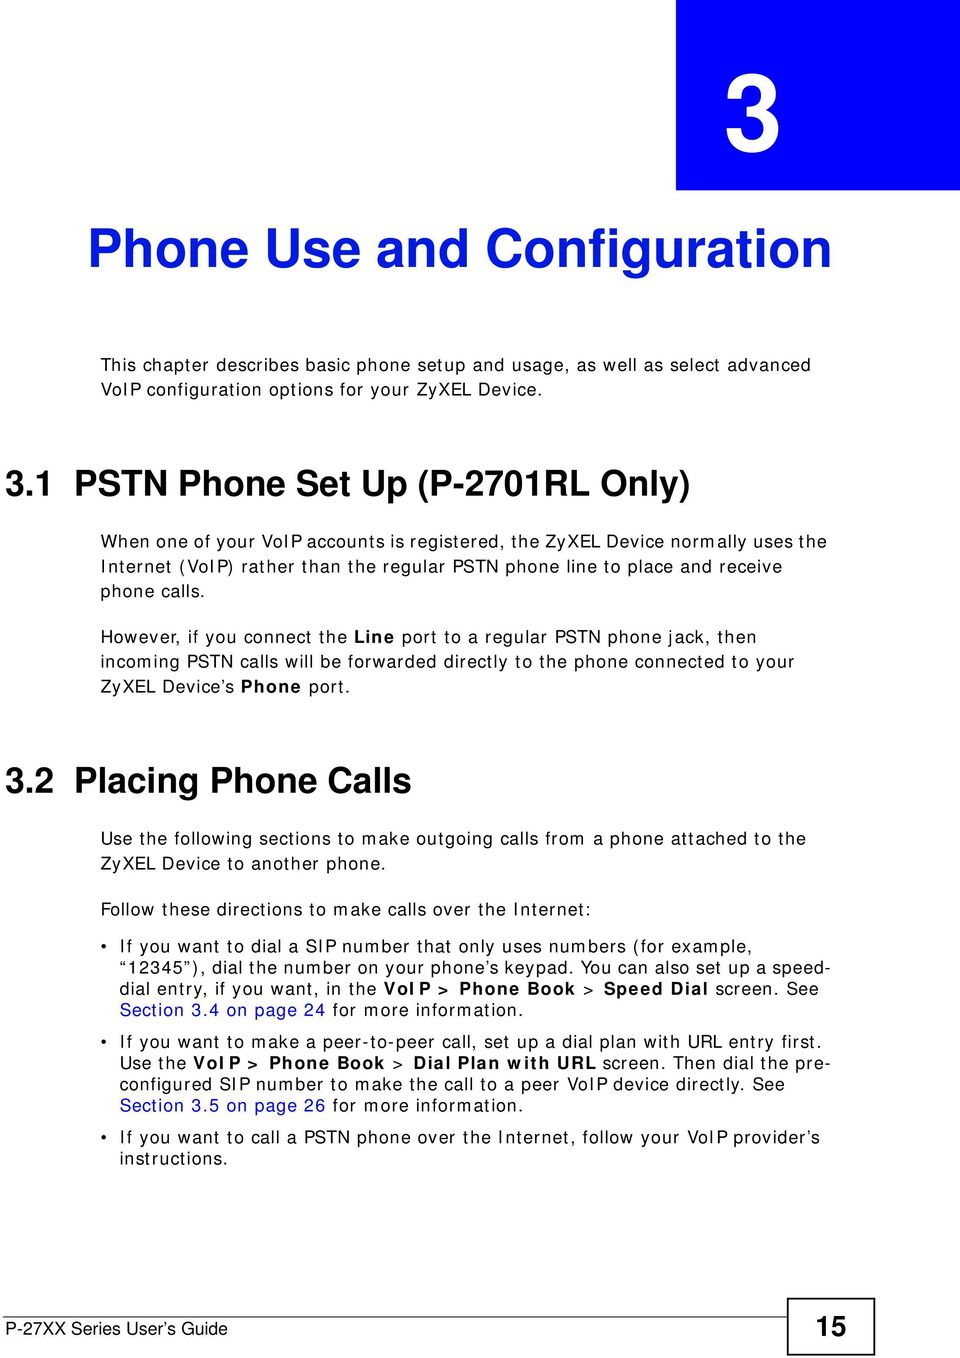 1 PSTN Phone Set Up (P-2701RL Only) When one of your VoIP accounts is registered, the ZyXEL Device normally uses the Internet (VoIP) rather than the regular PSTN phone line to place and receive phone